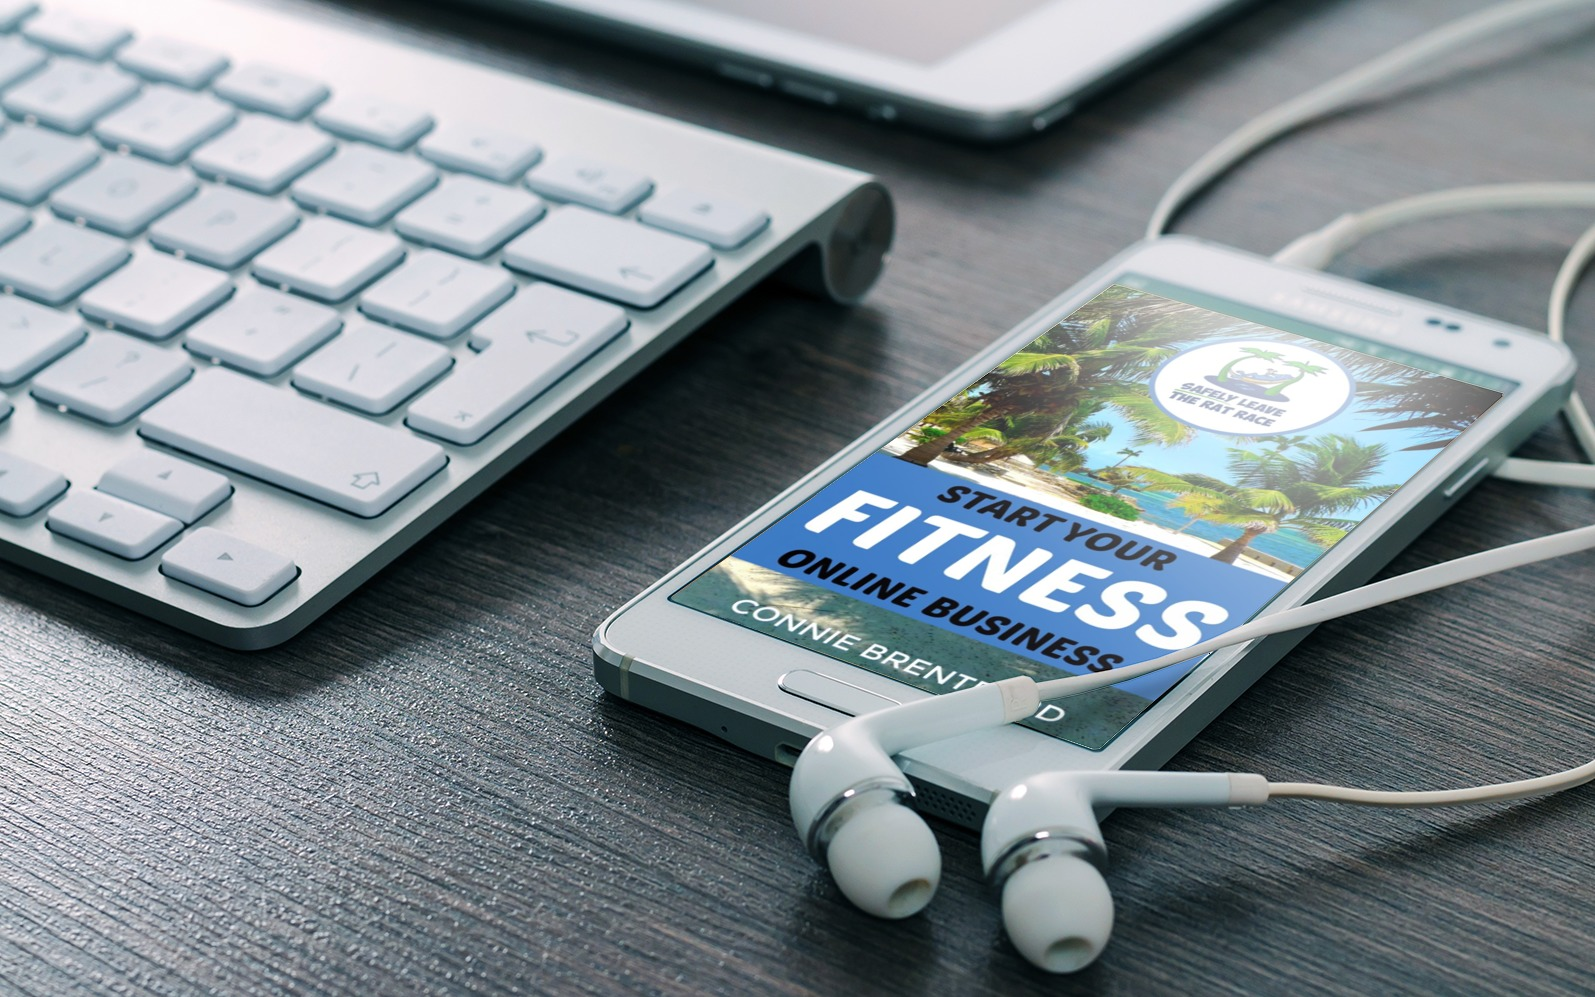 Updated: Ever Wanted Your Own Fitness Business?